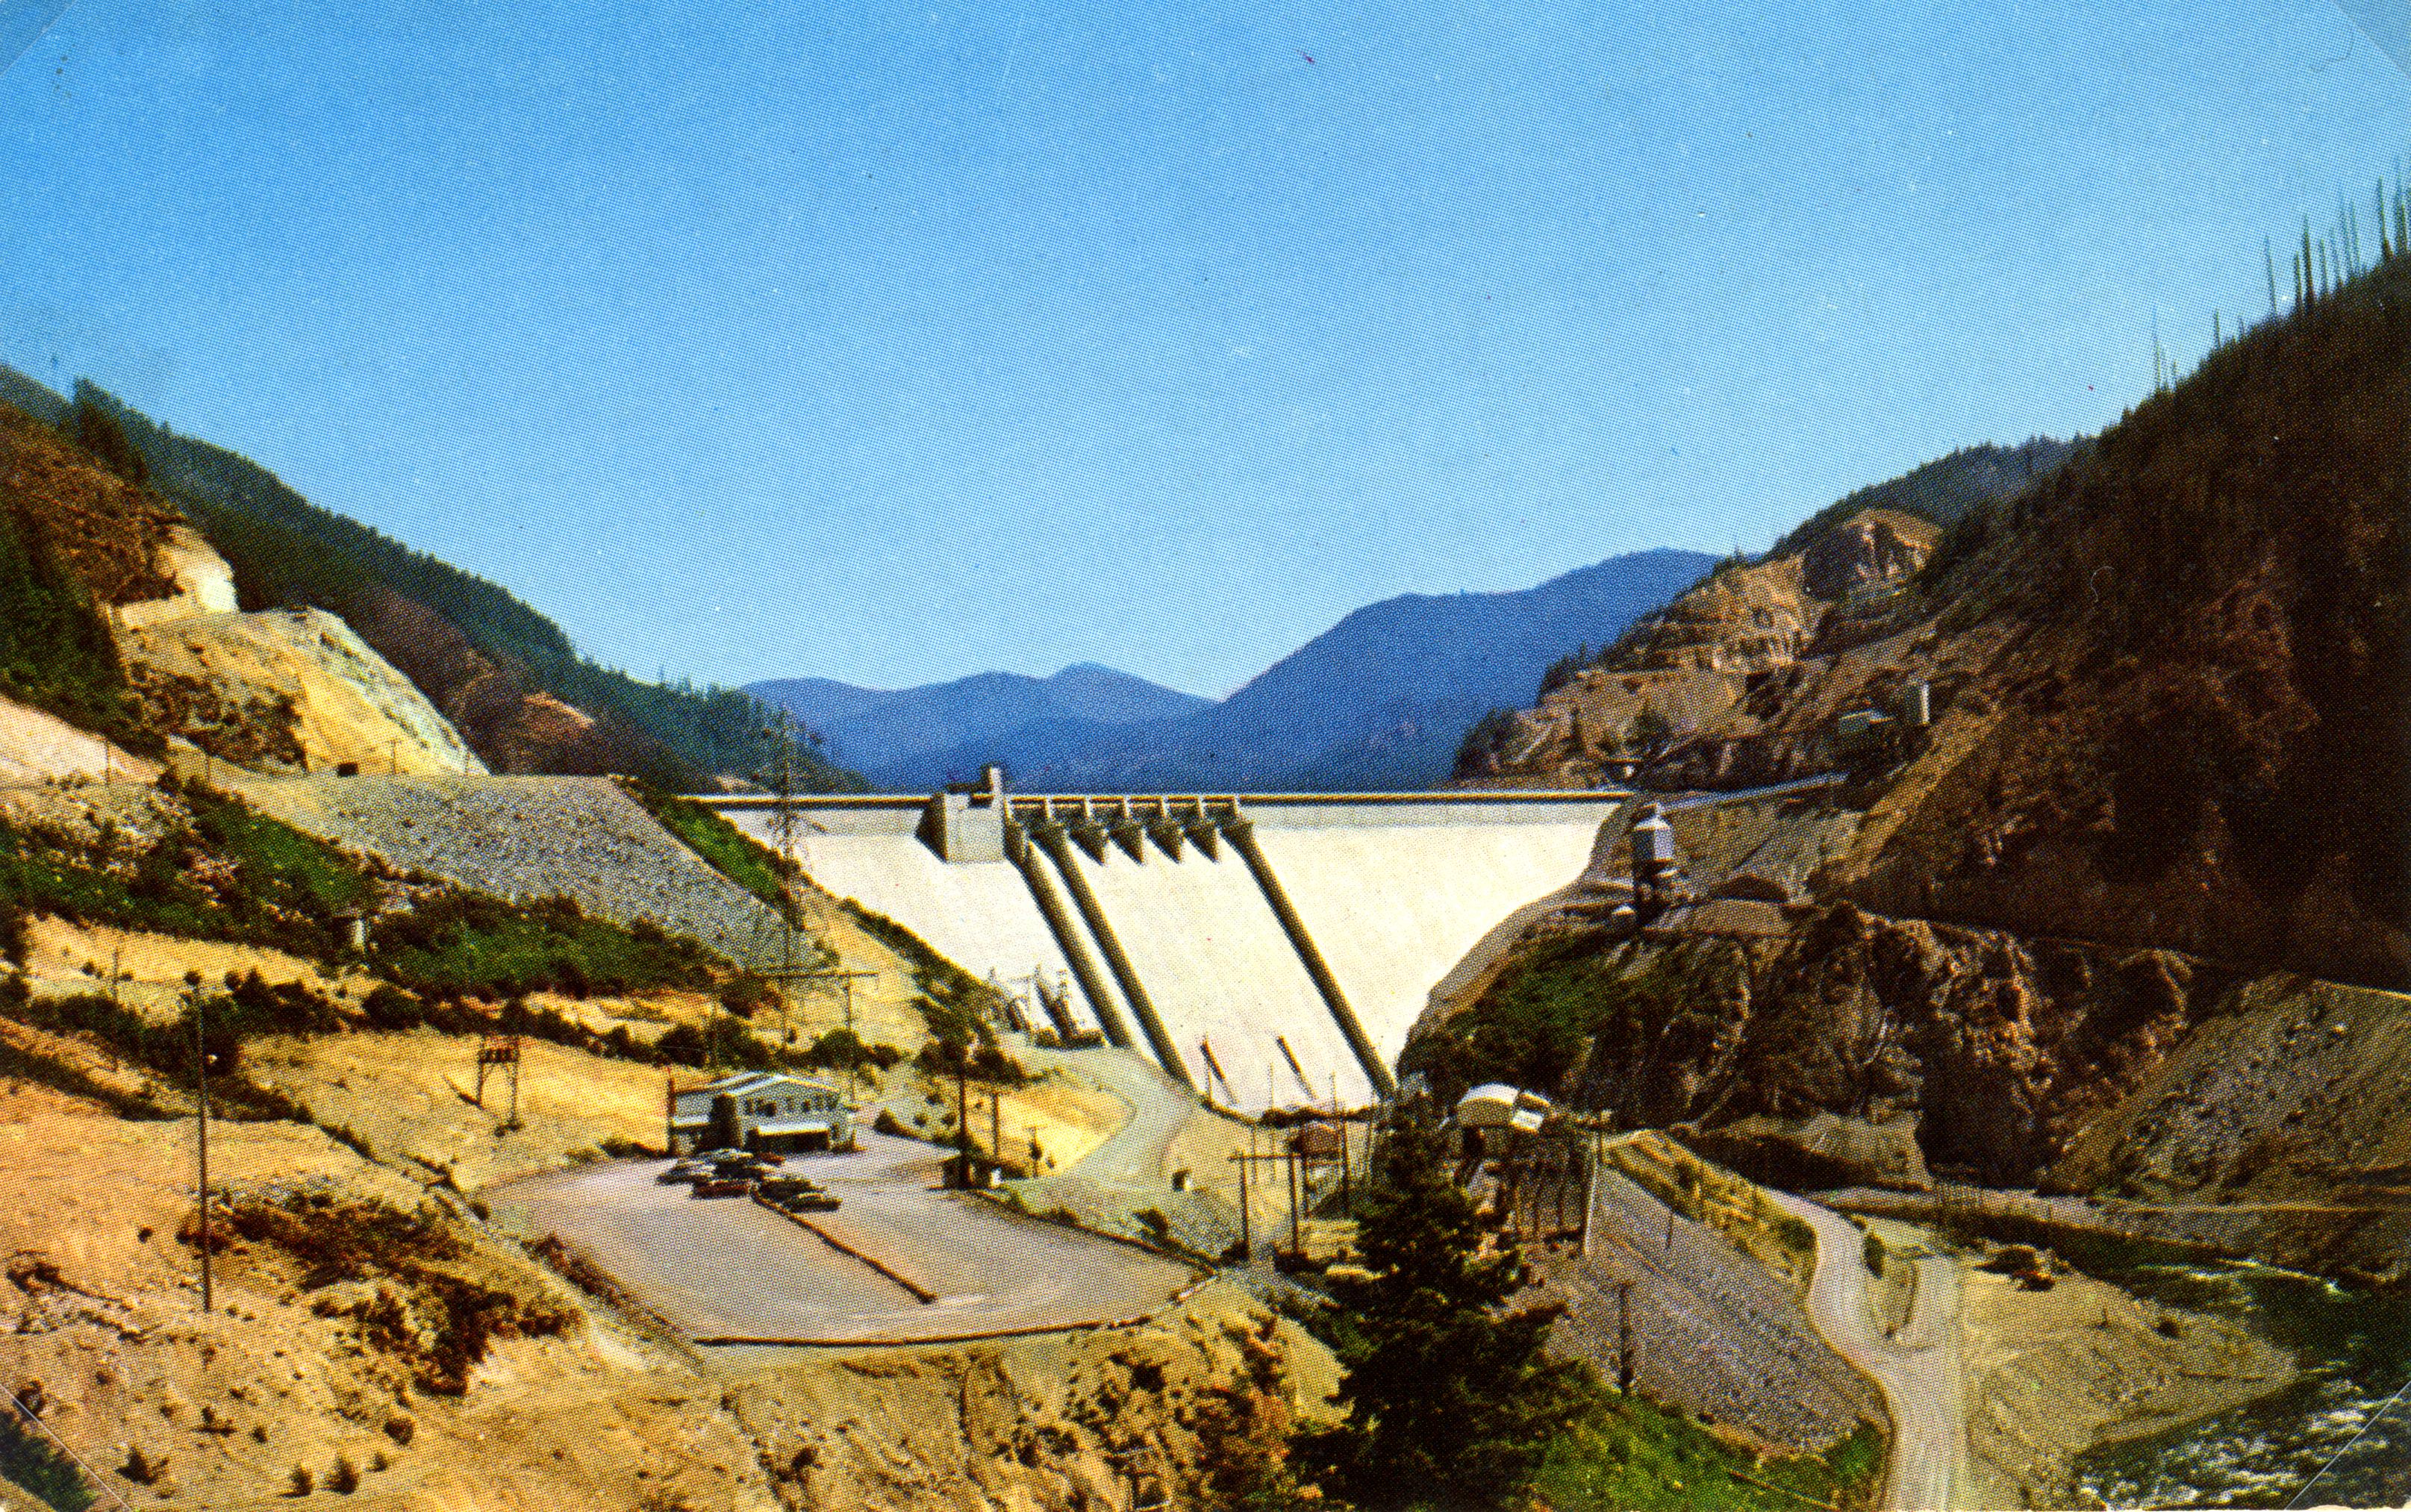 Detroit Dam - Santiam Valley, Ore.